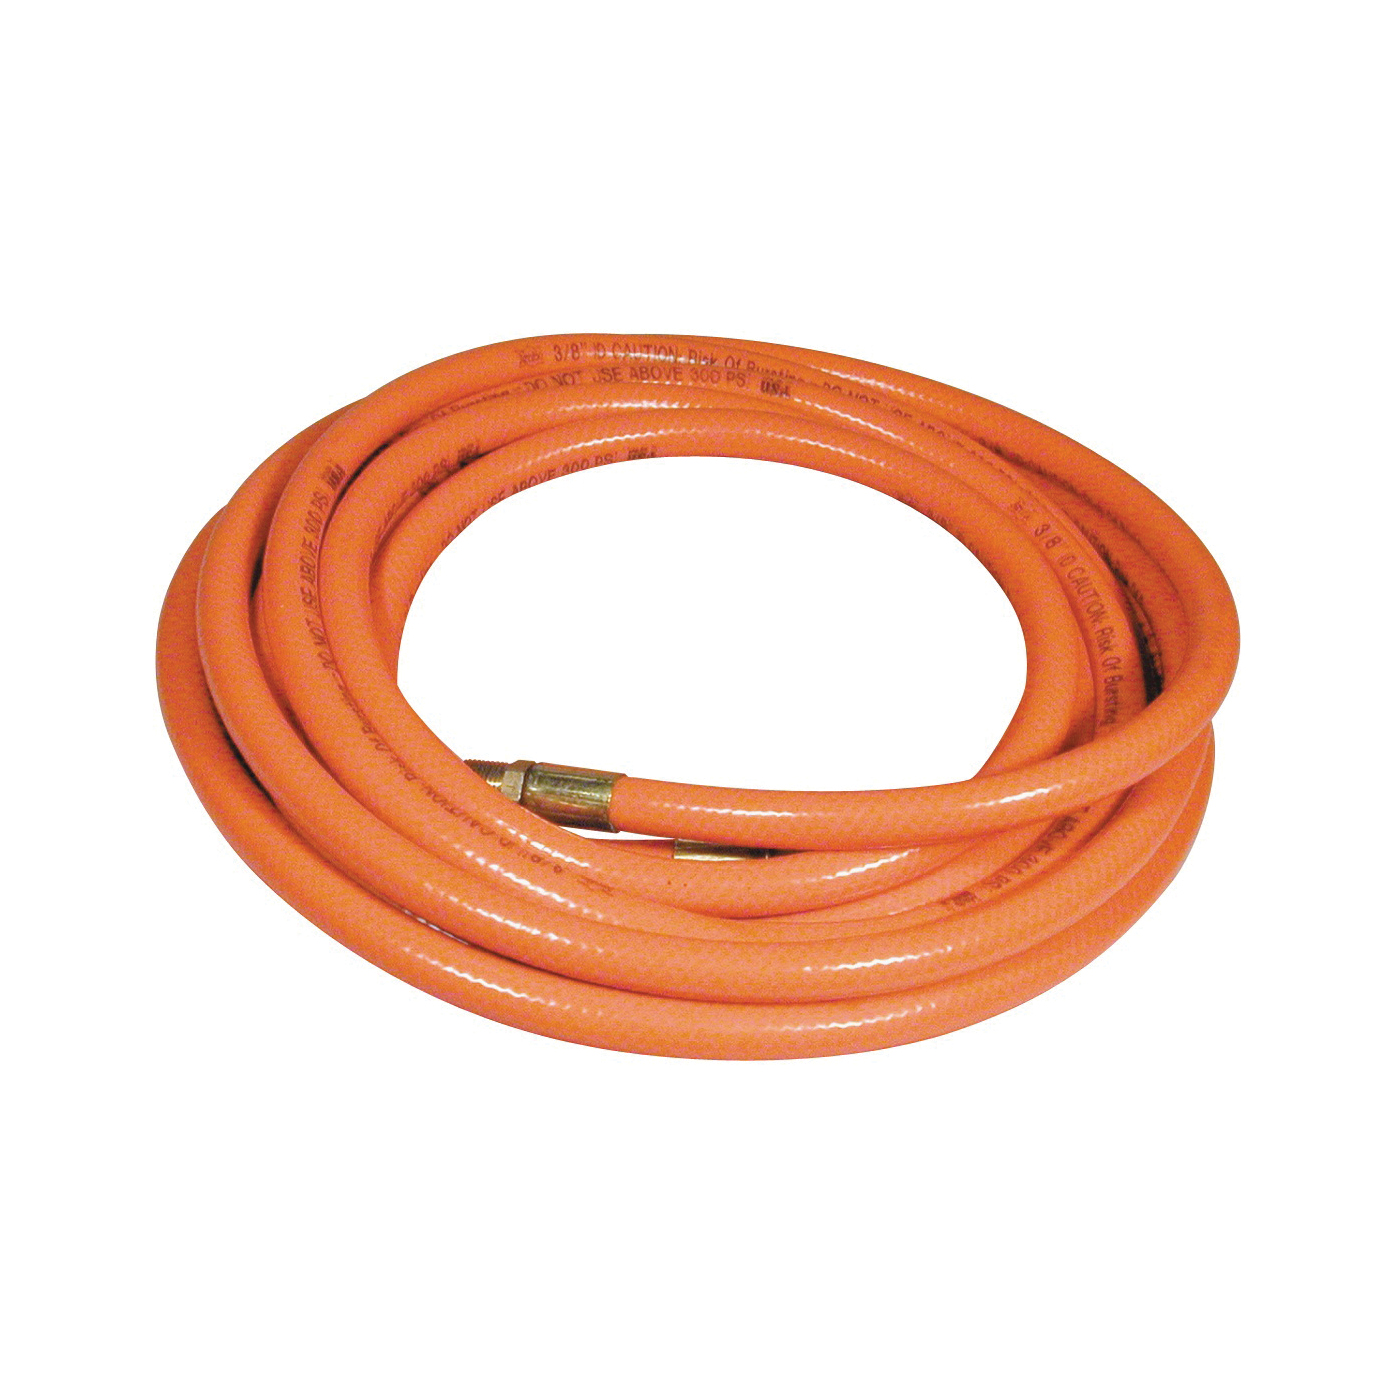 Picture of Amflo 576-25A Air Hose, 3/8 in OD, 25 ft L, MNPT, 300 psi Pressure, PVC, Orange